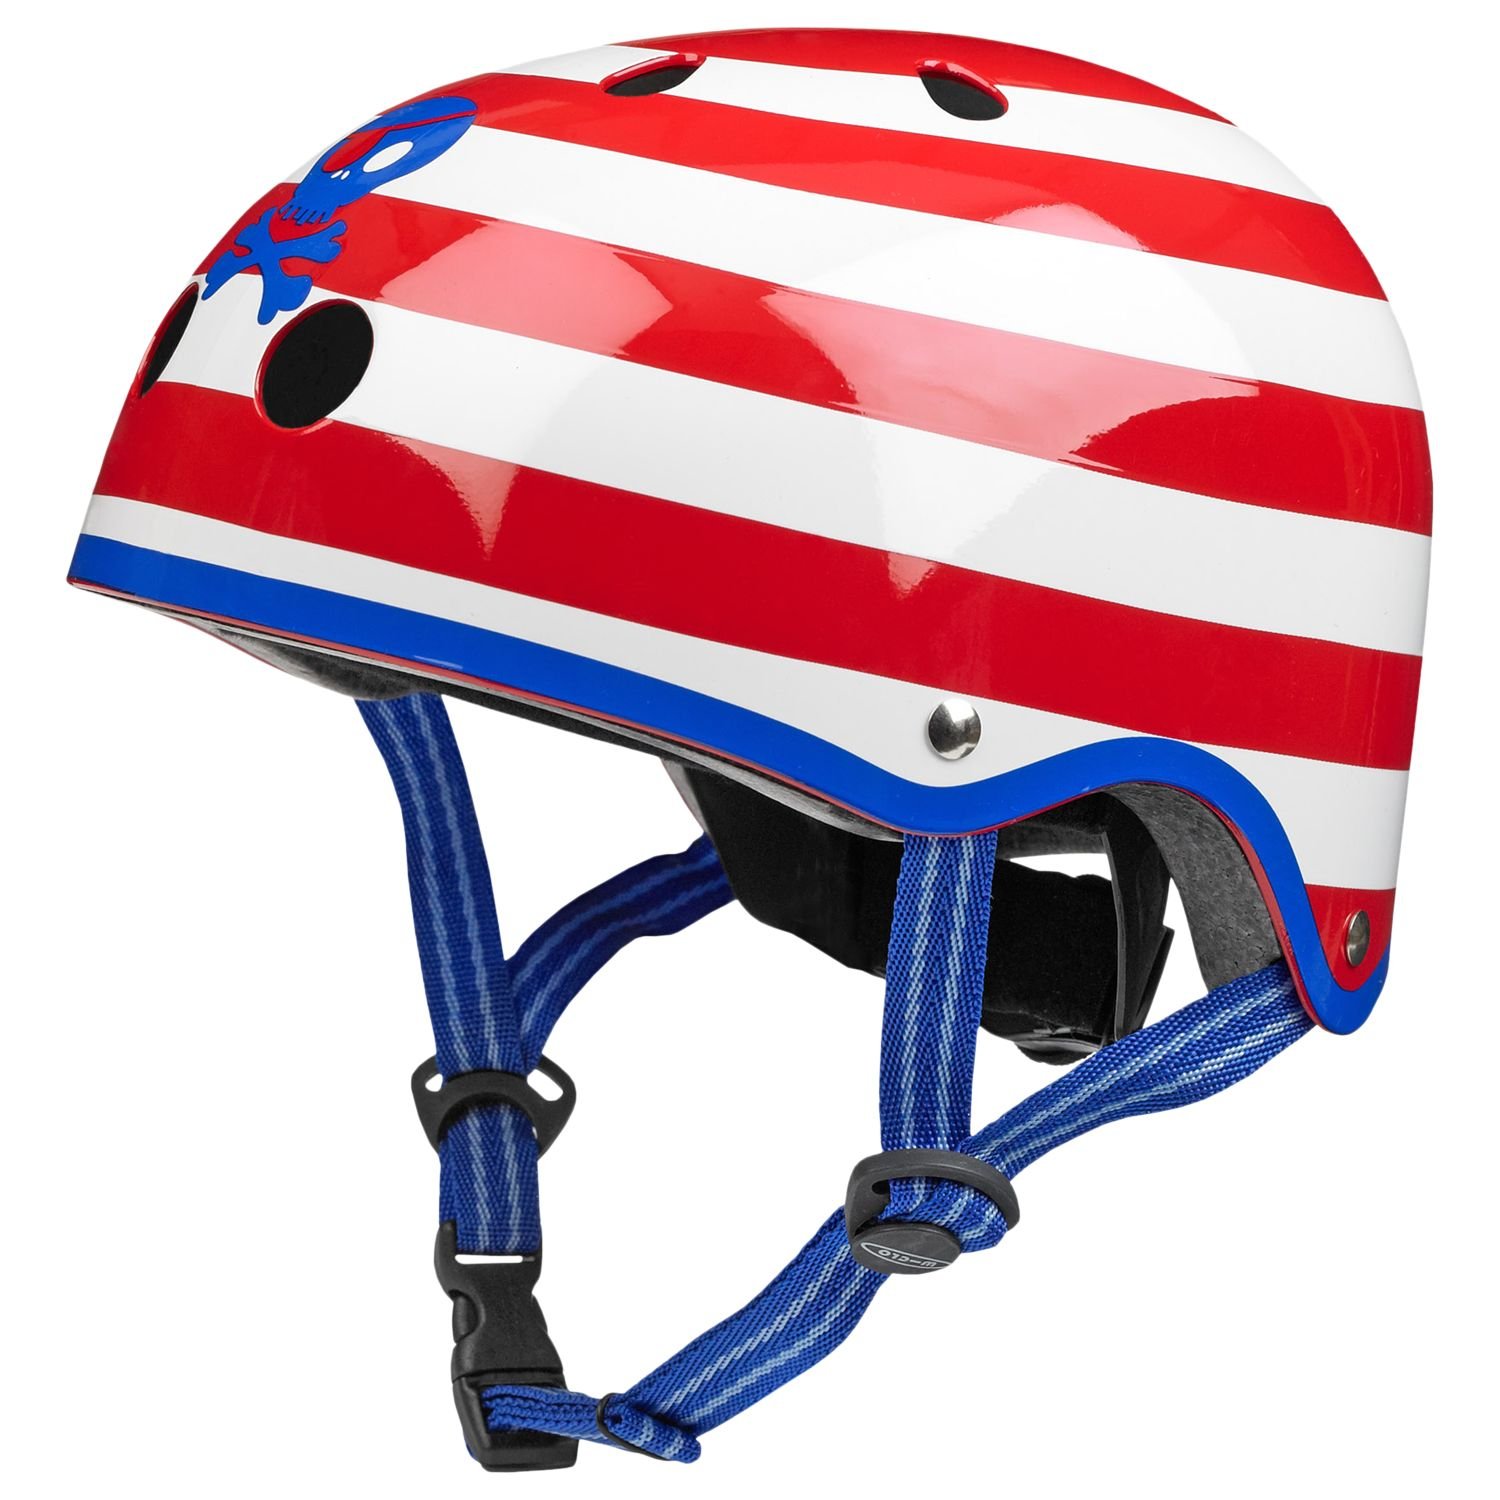 Micro Micro Scooter Pirate Safety Helmet, Medium